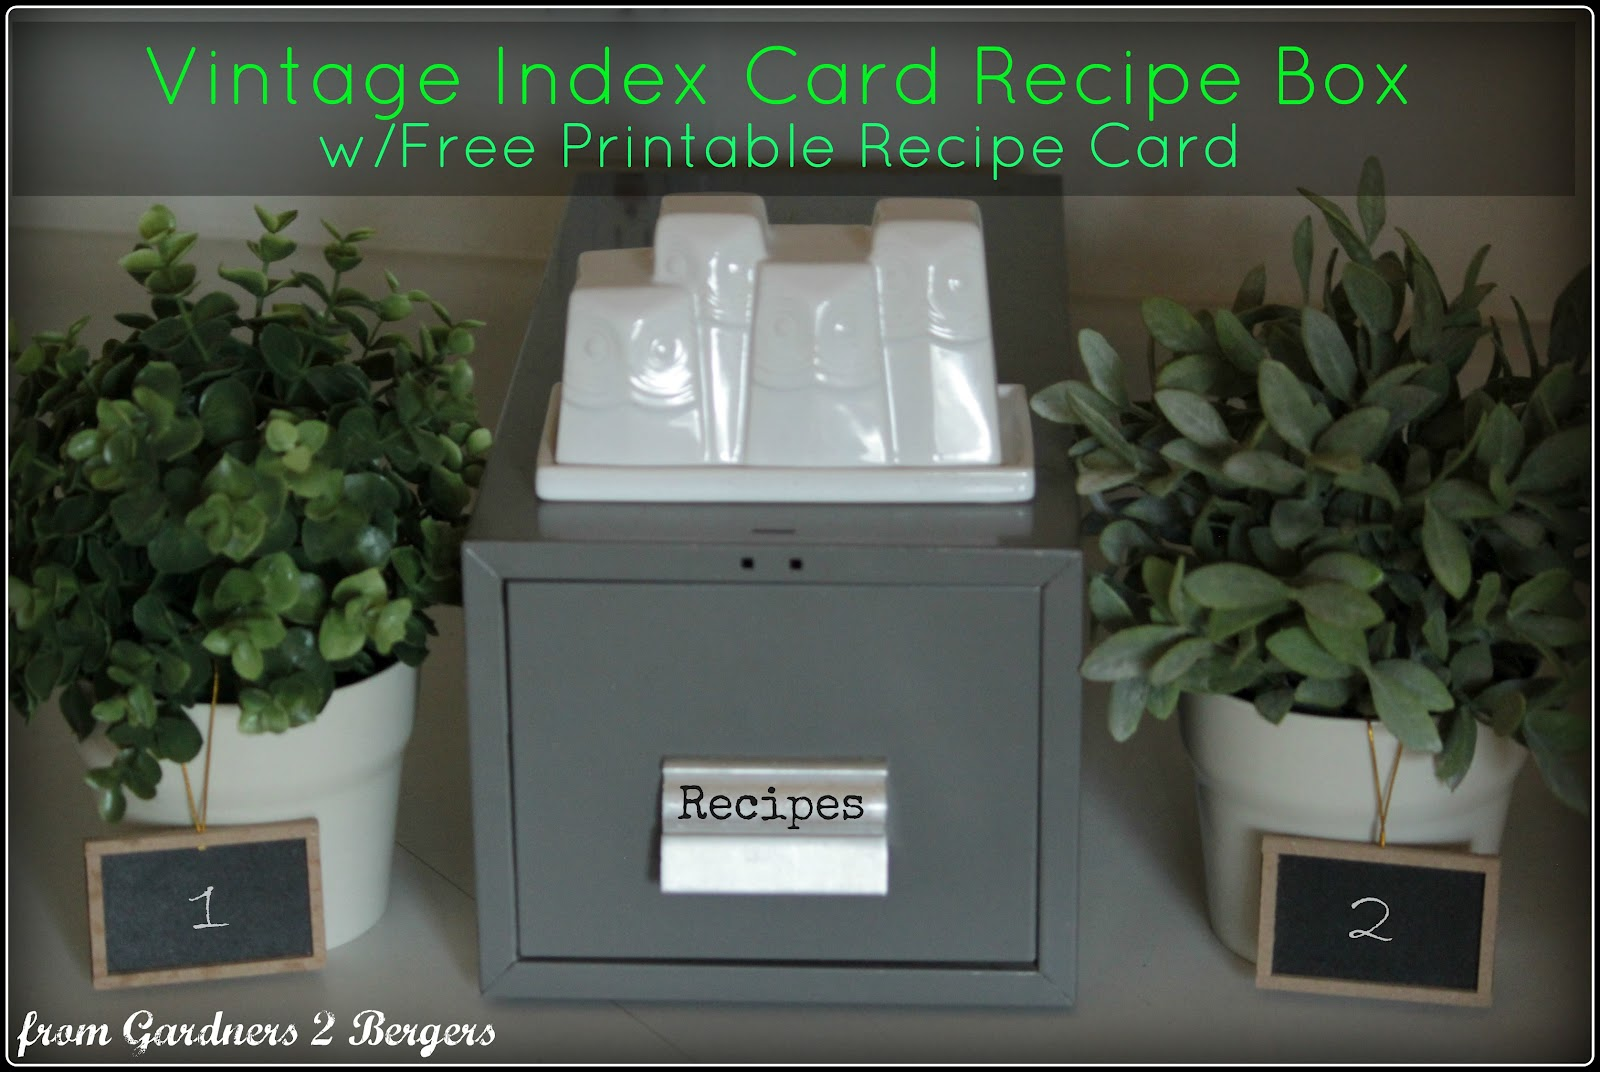 Vintage-Index-Card-Recipe-Box-Printable-Recipe-Cards